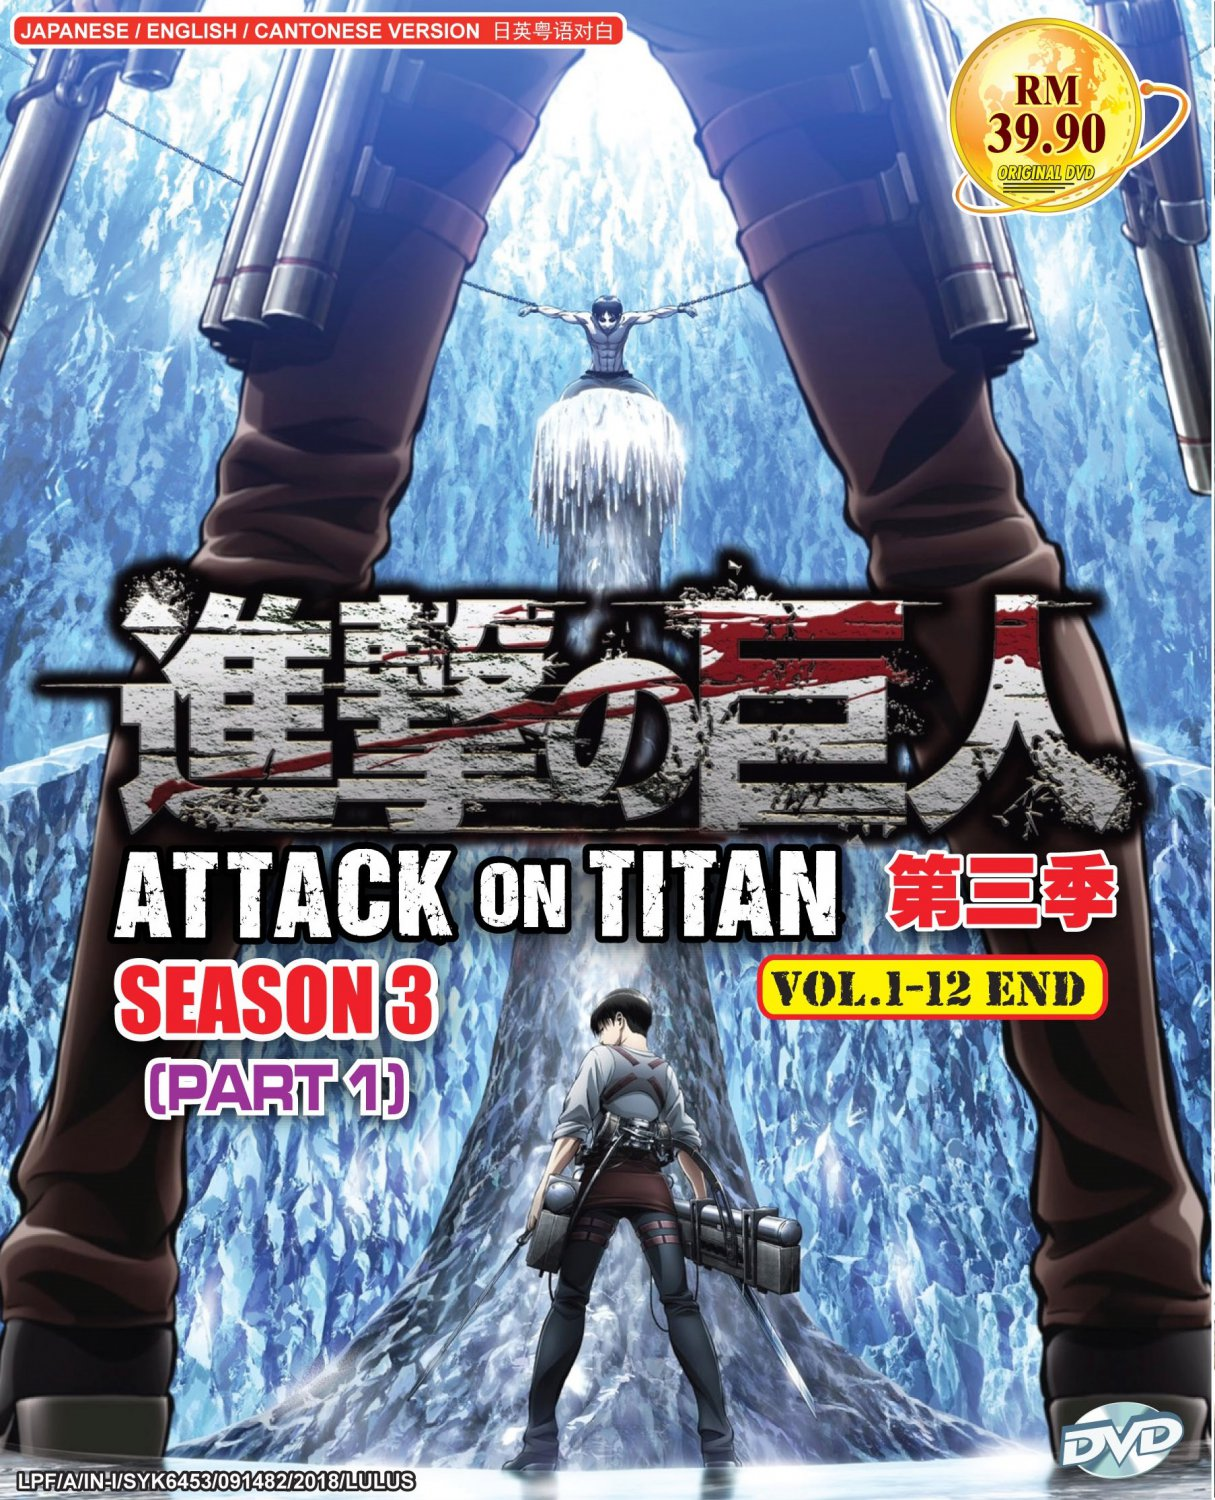 DVD Attack On Titan Sea 3 Part 1 Vol.1-12 End ���巨人 Japanese Anime Eng Dub region All